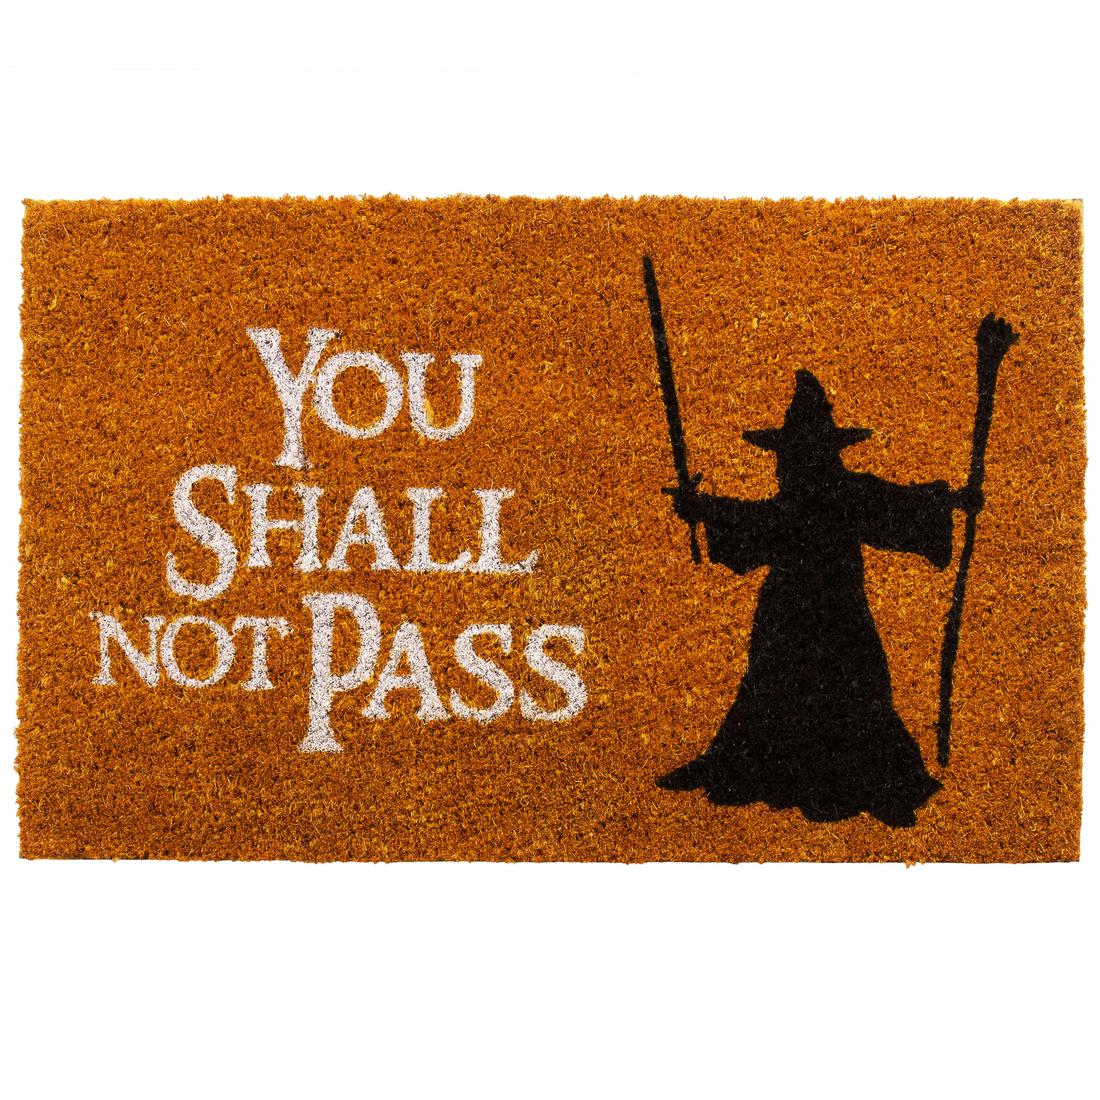 Paillasson You Shall Not Pass Getdigital